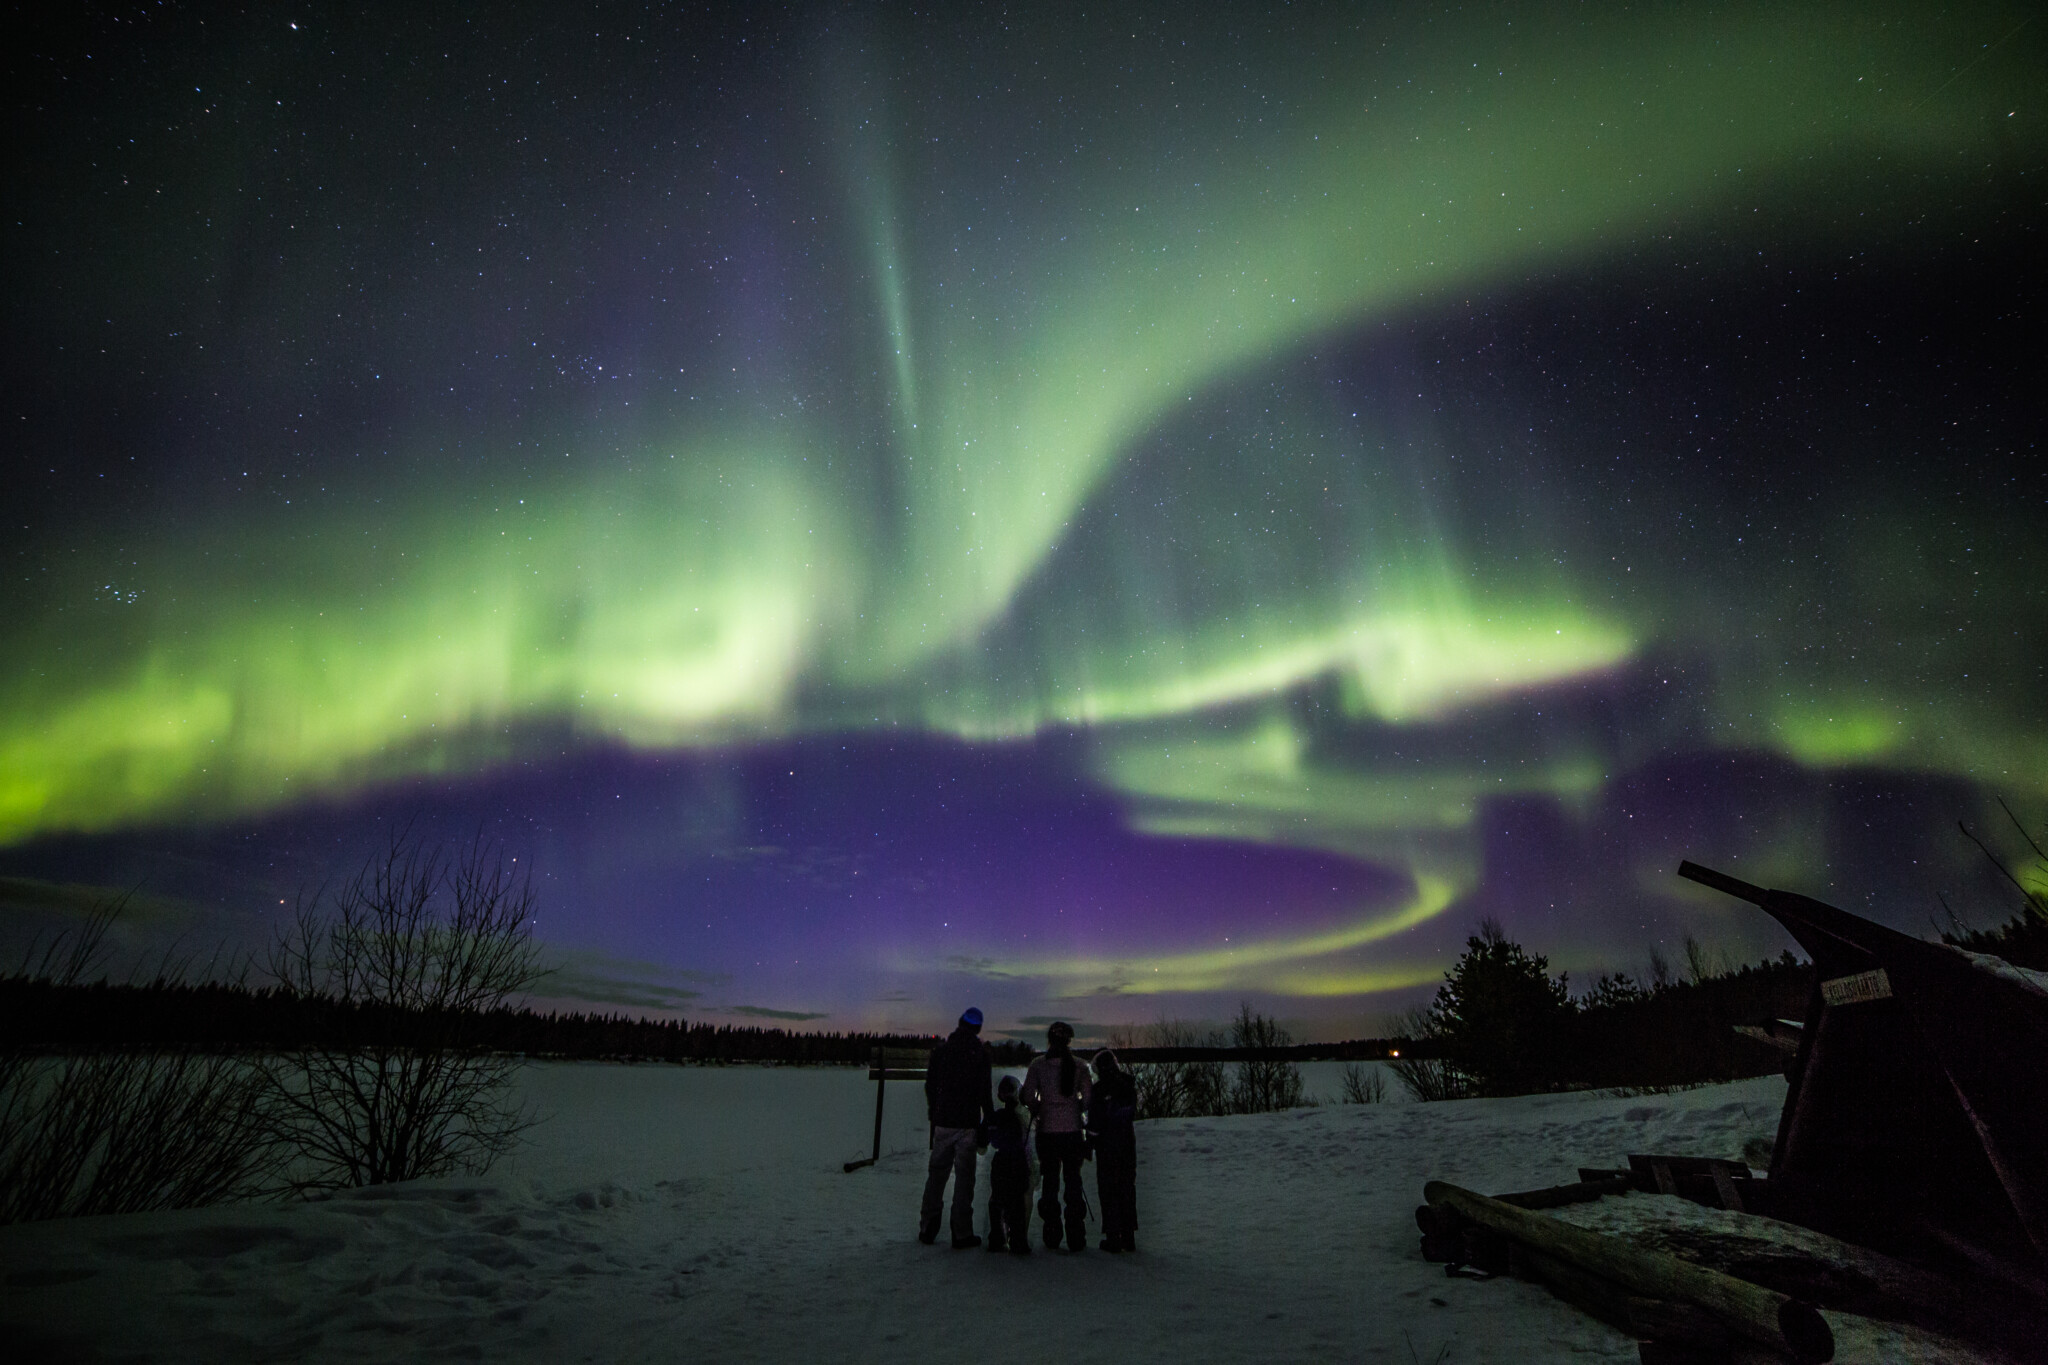 Family under the Northern Lights in Rovaniemi Lapland Finland Photo by Juho Uutela